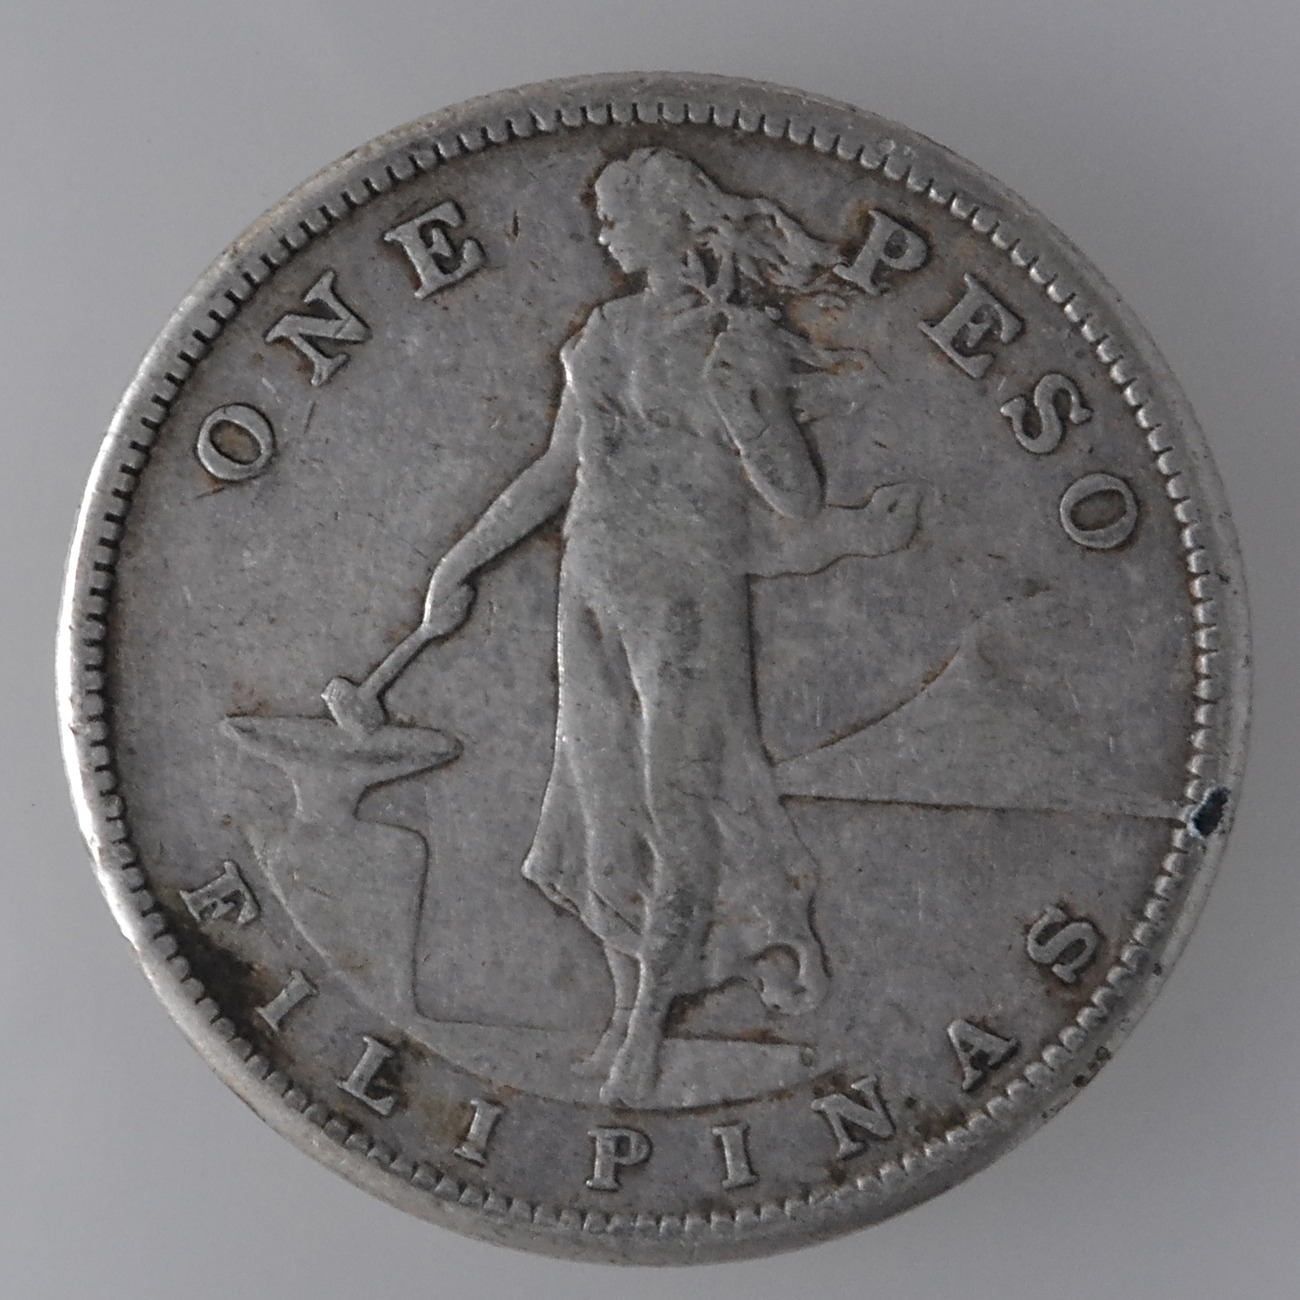 Coin Ph: U.S Philippines 1908s, One (1) Peso Silver Coin